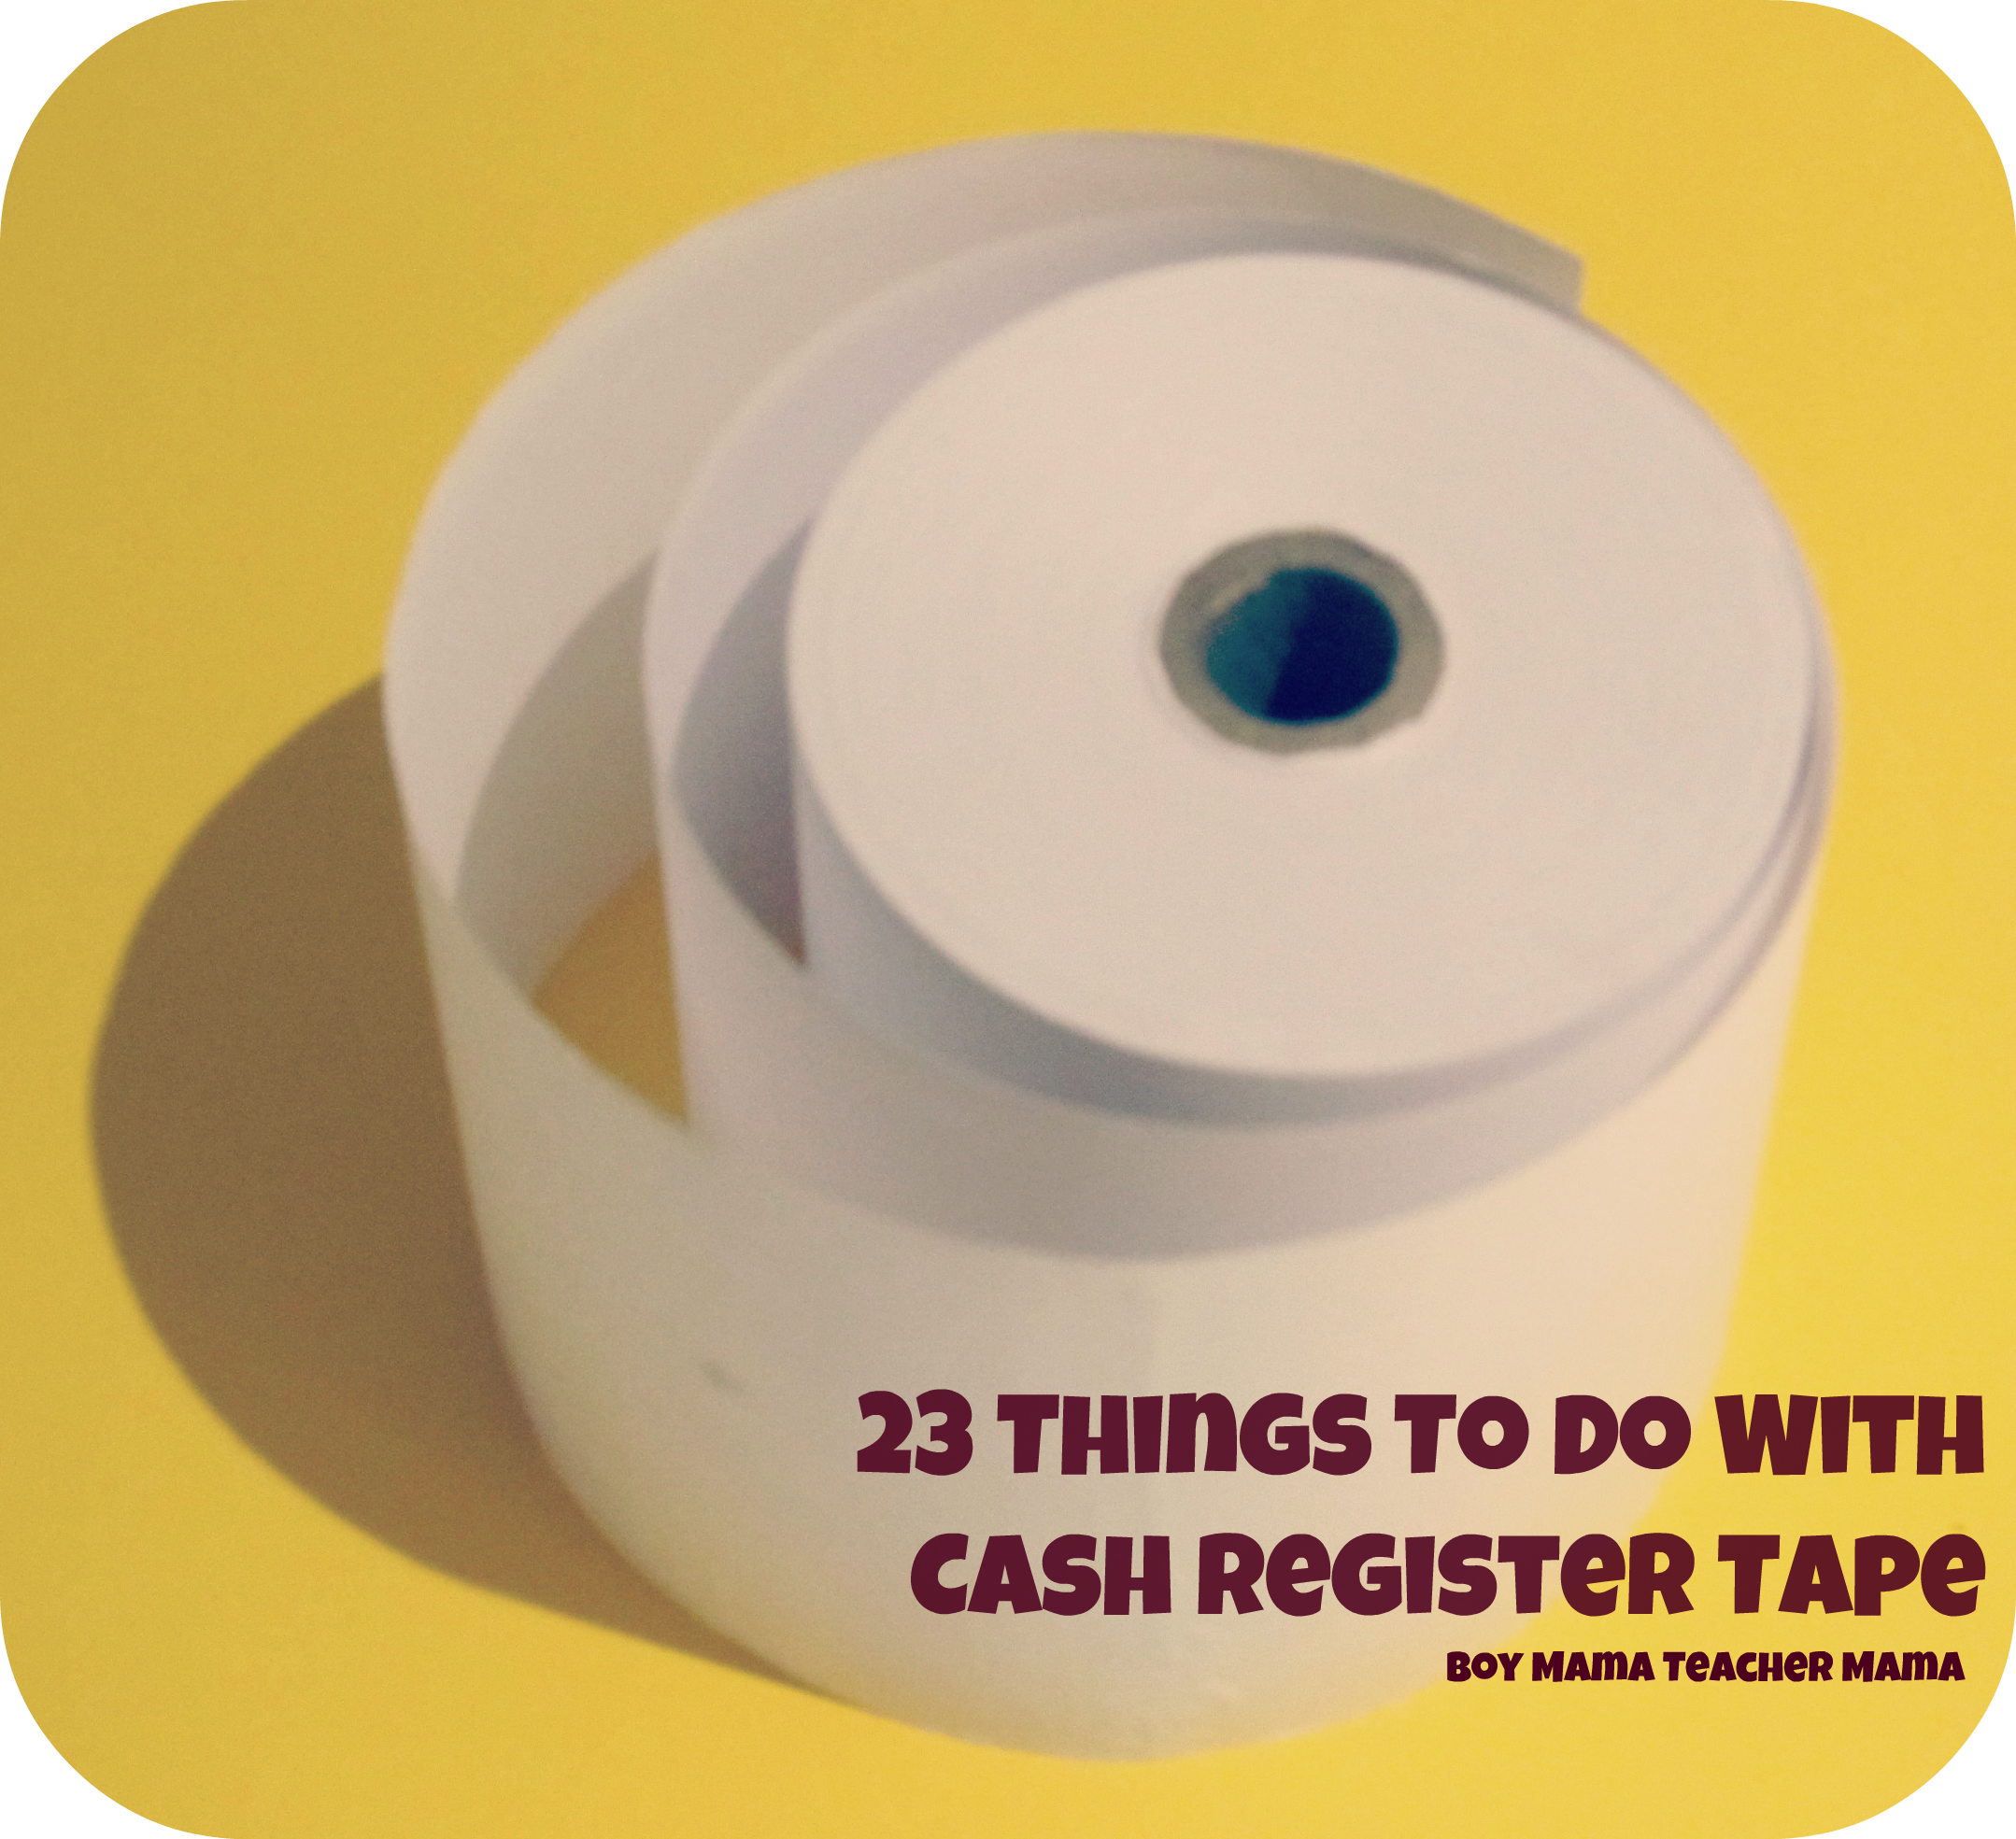 Boy Mama: 23 Uses for Cash Register Tape